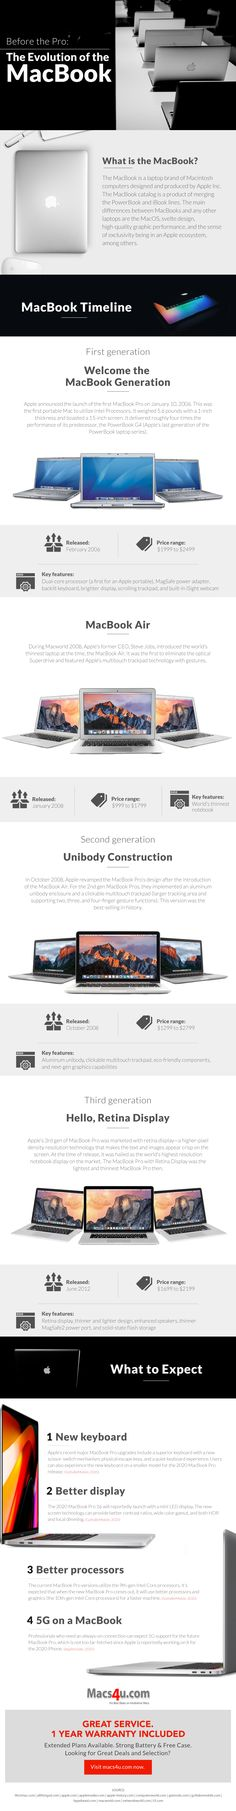 Apple MacBook Evolution, Progression and History - Infographic. #Infographic #MacBook #Apple #MacBookPro #MacBookAir #Laptop #WWDC Palm Rest, Intel Processors, Apple Laptop, Retina Display, Apple Products, Macbook Pro, Evolution, History, Historia